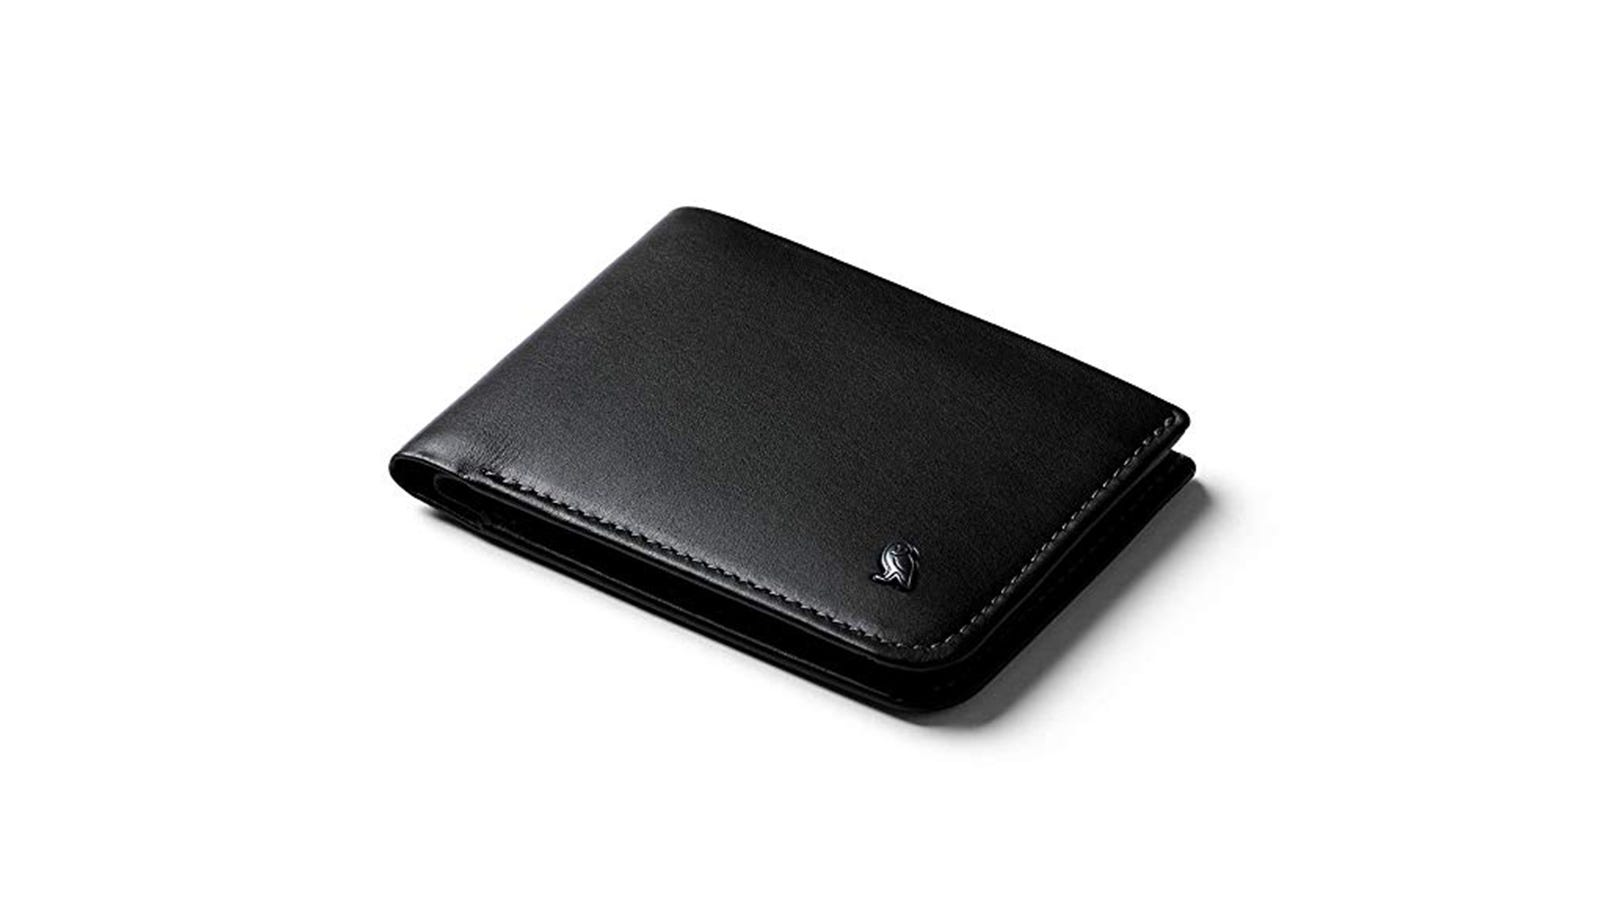 Bellroy Hide & Seek, slim leather wallet, RFID editions available (Max. 12 cards and cash)